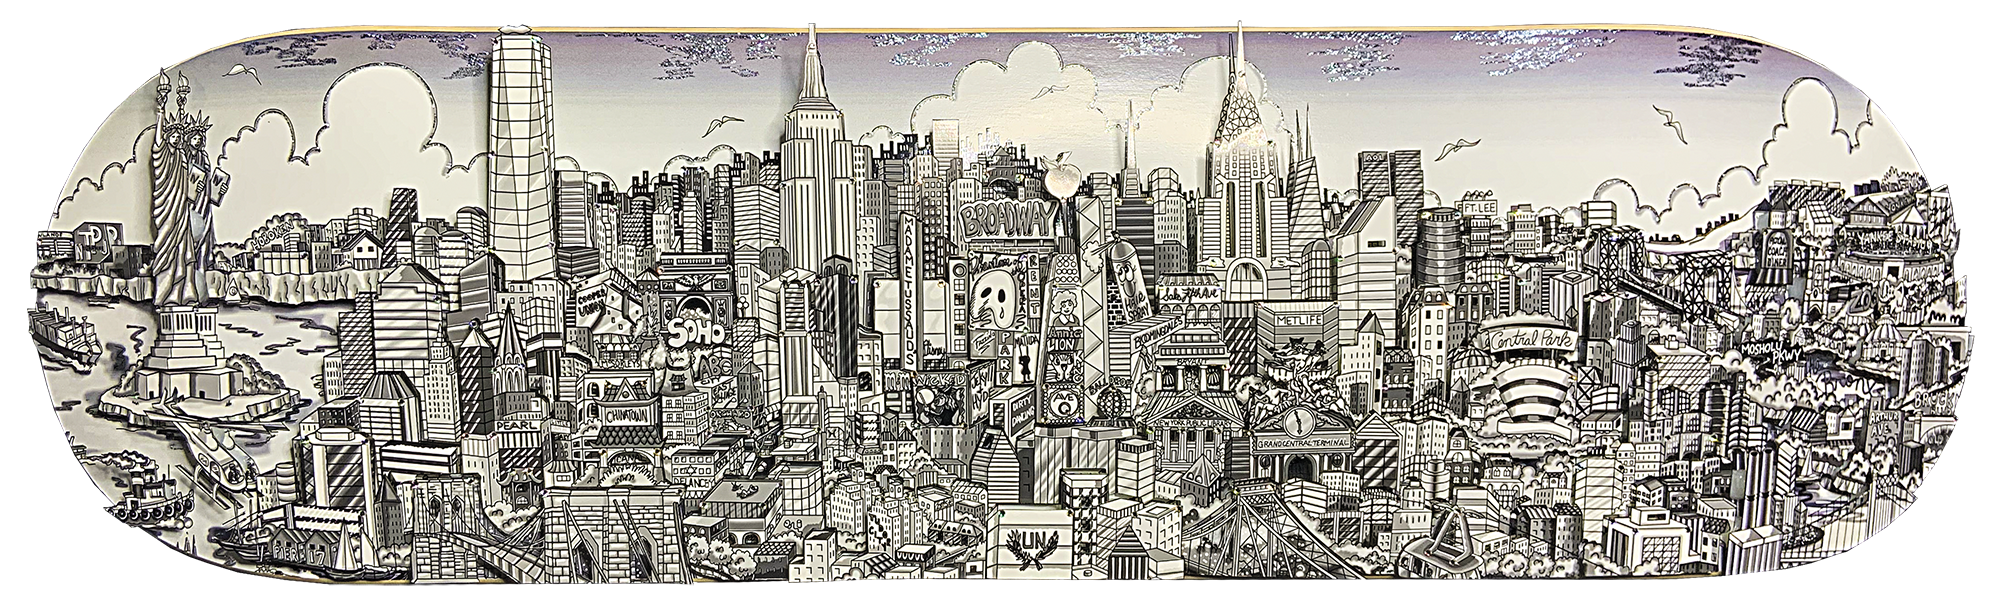 Charles Fazzino - Reflections of Manhattan Skateboard